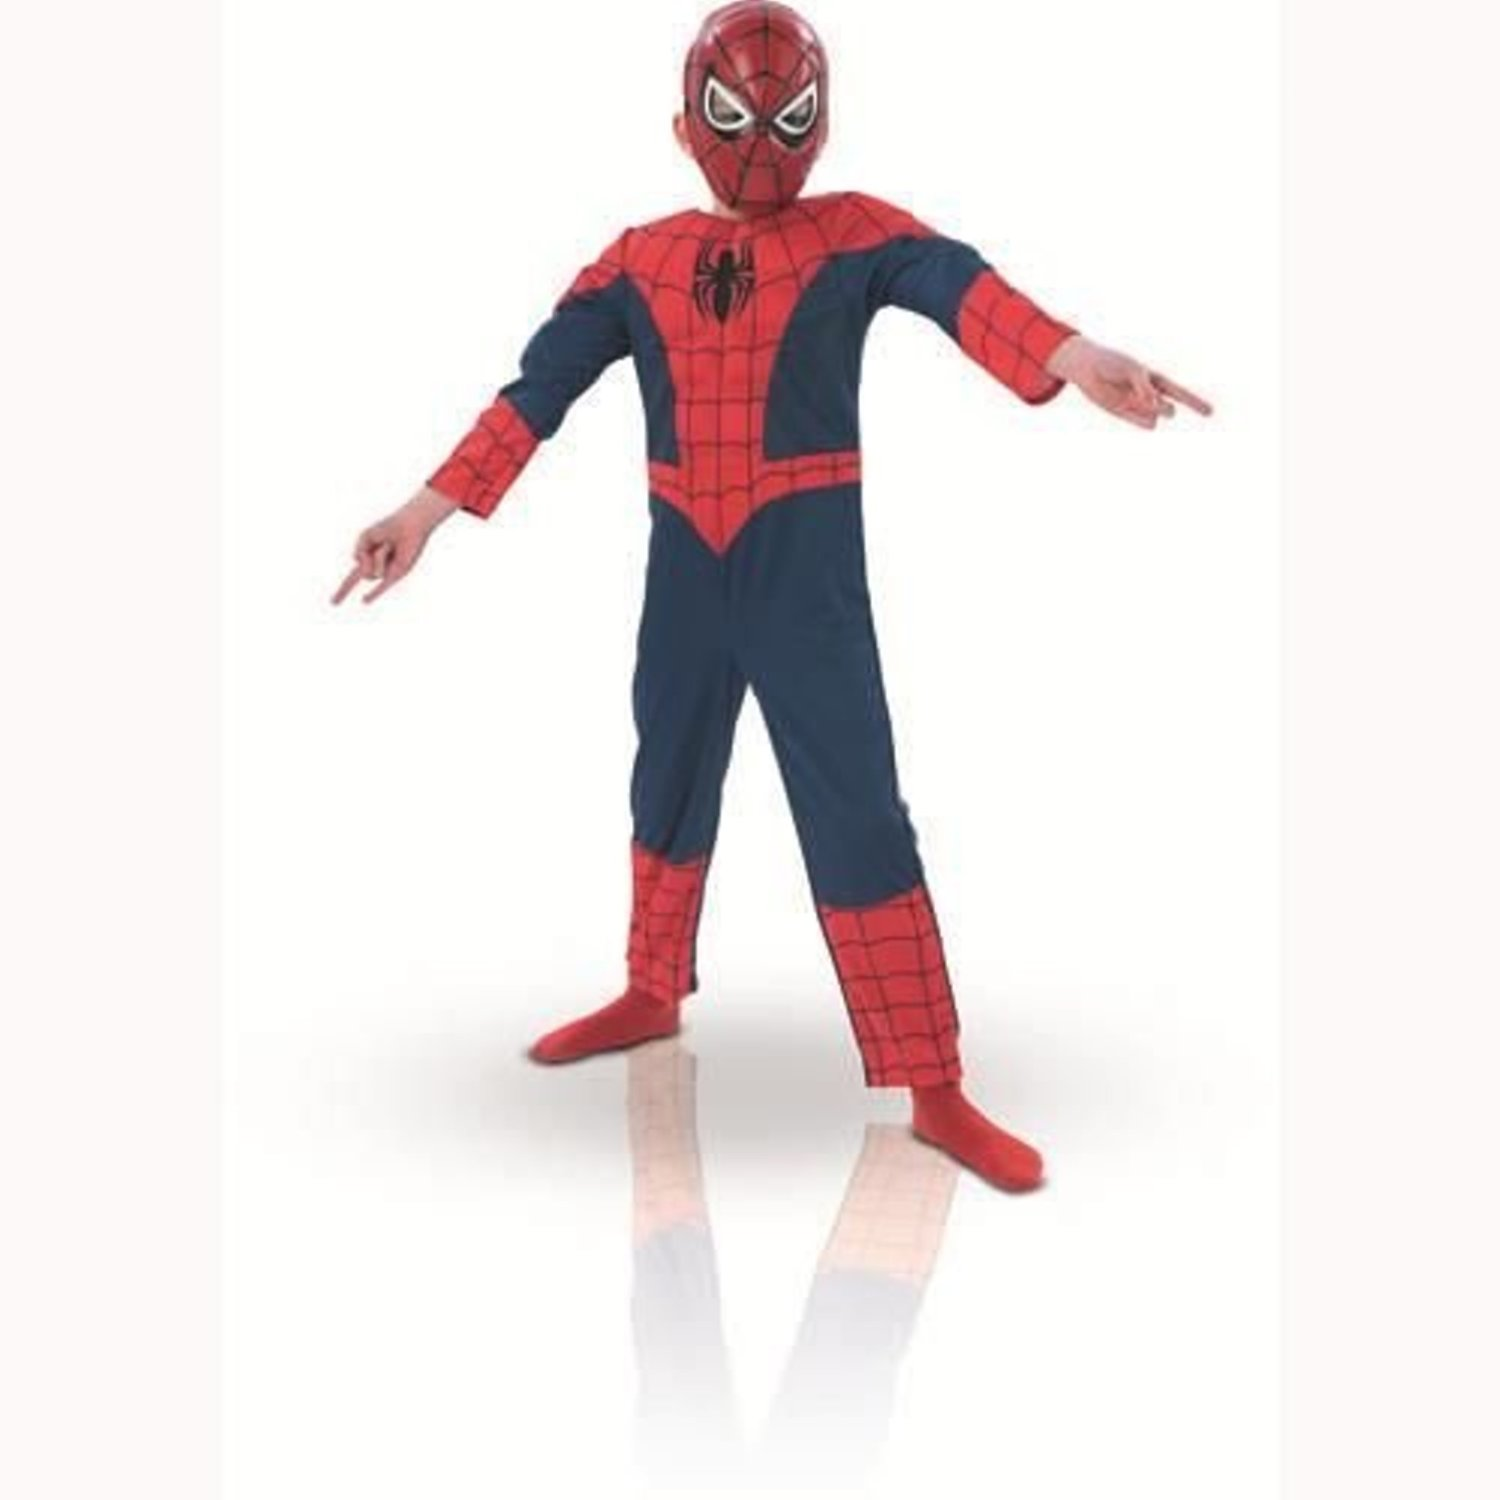 Spiderman costume 886920